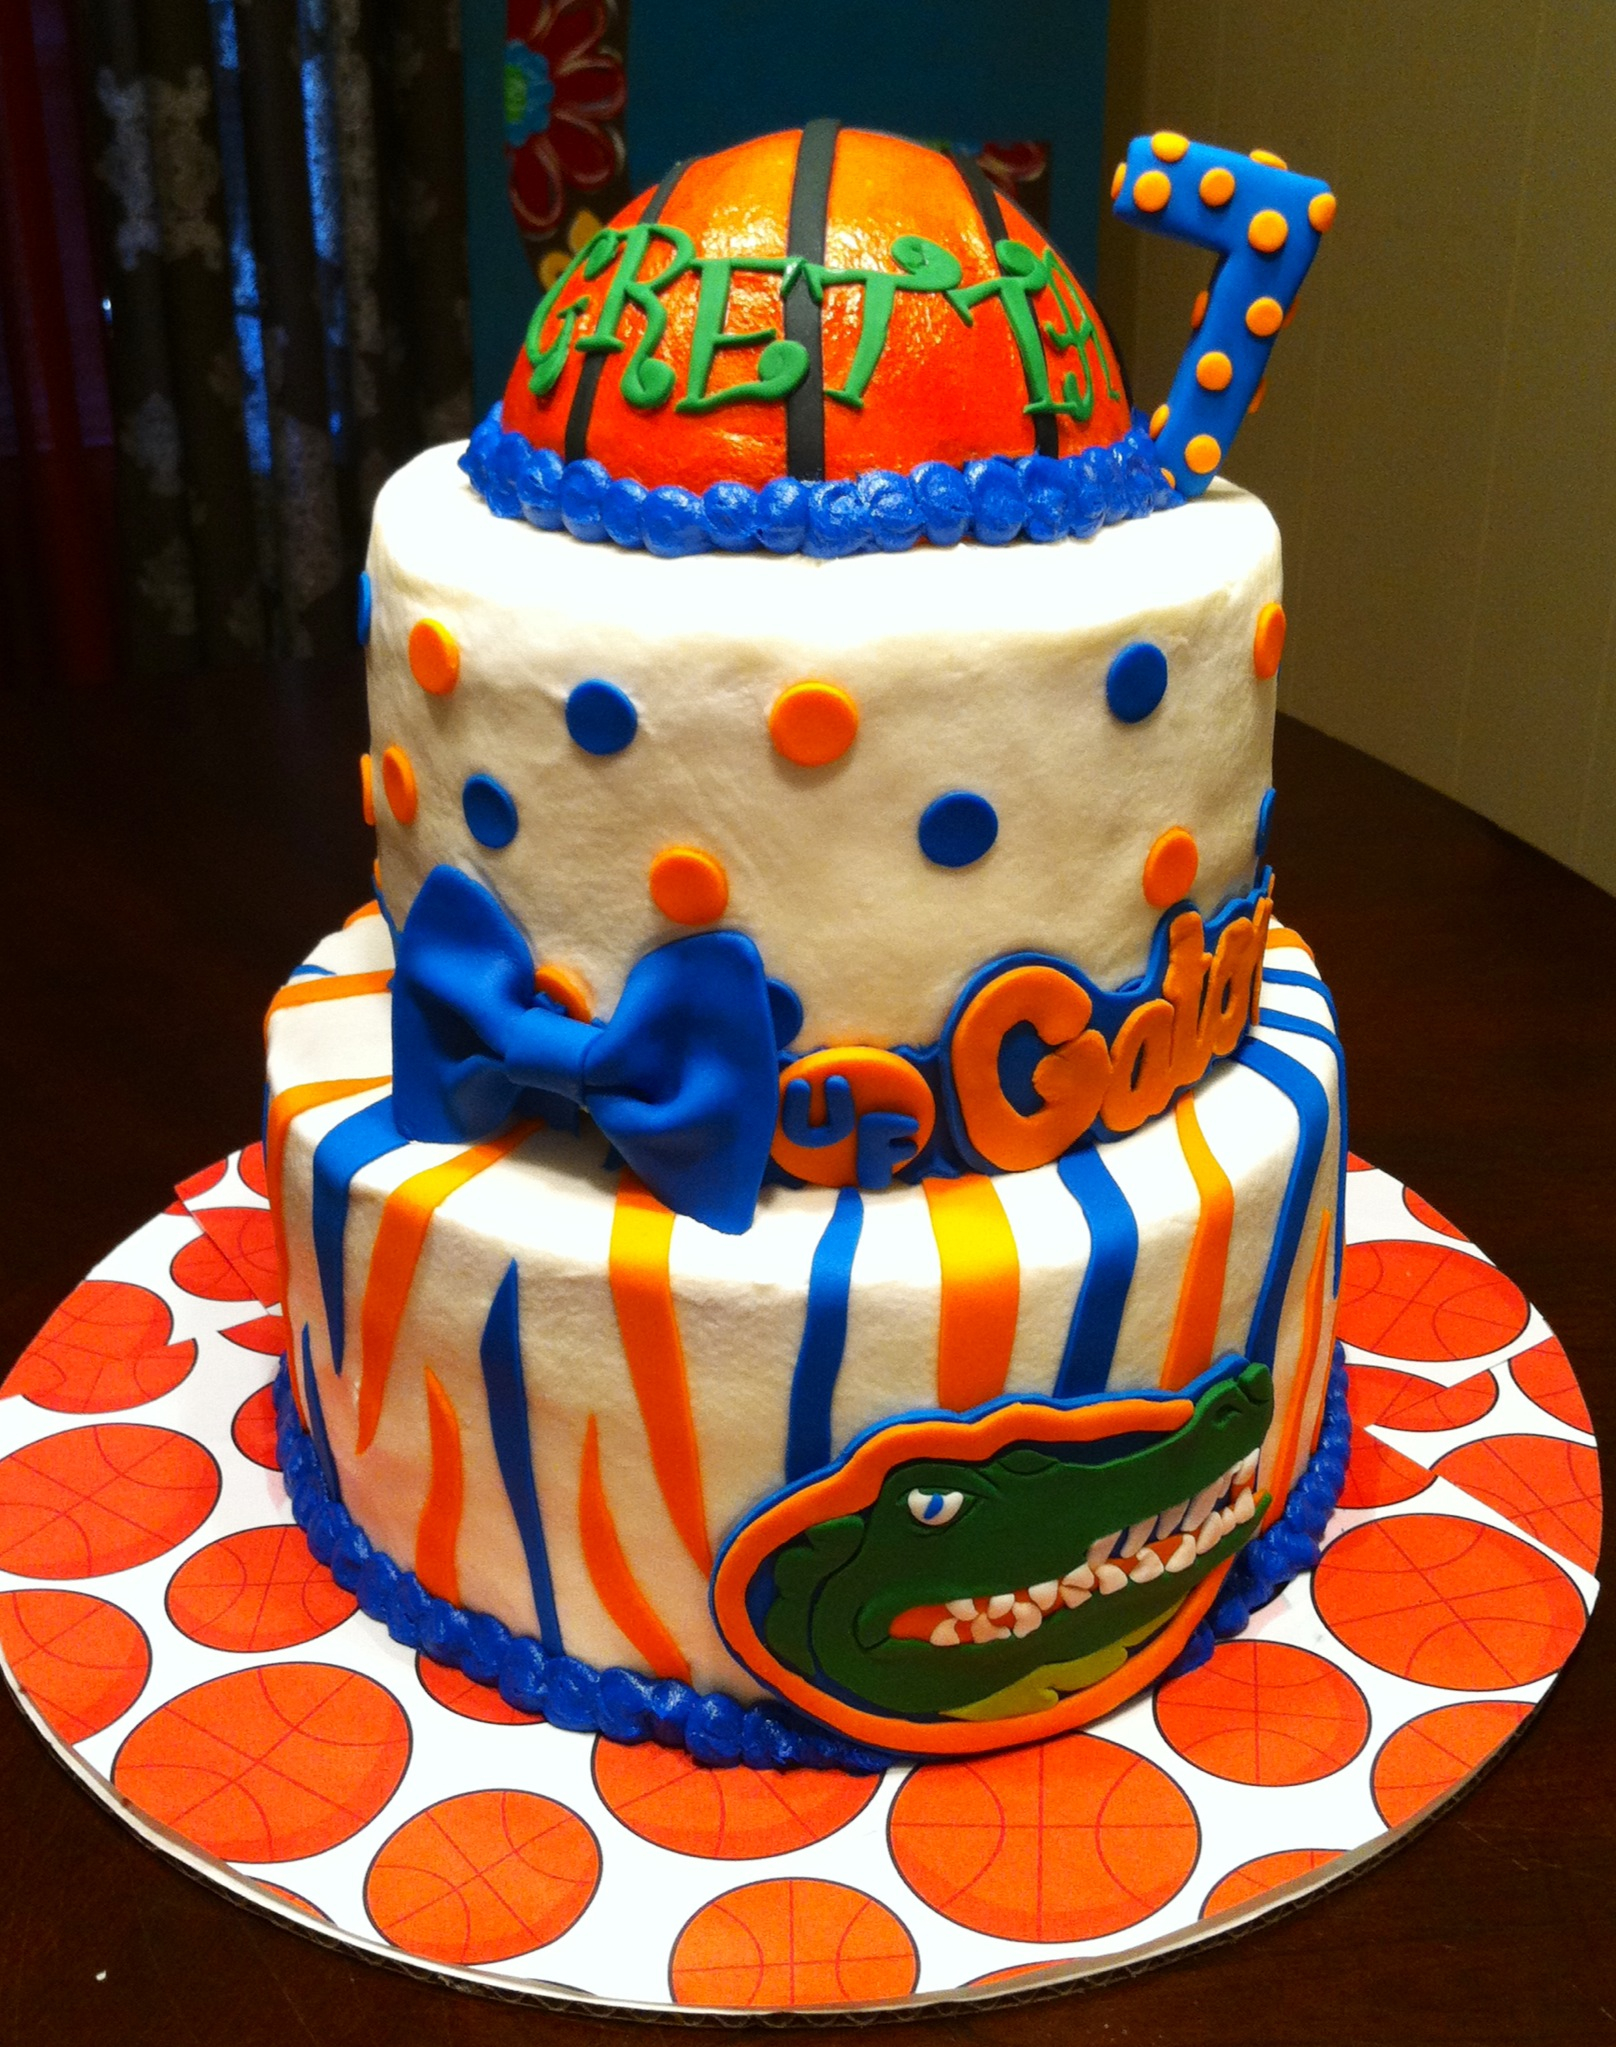 Stupendous 10 Uf Birthday Cakes Photo Florida Gators Birthday Cake Florida Personalised Birthday Cards Veneteletsinfo